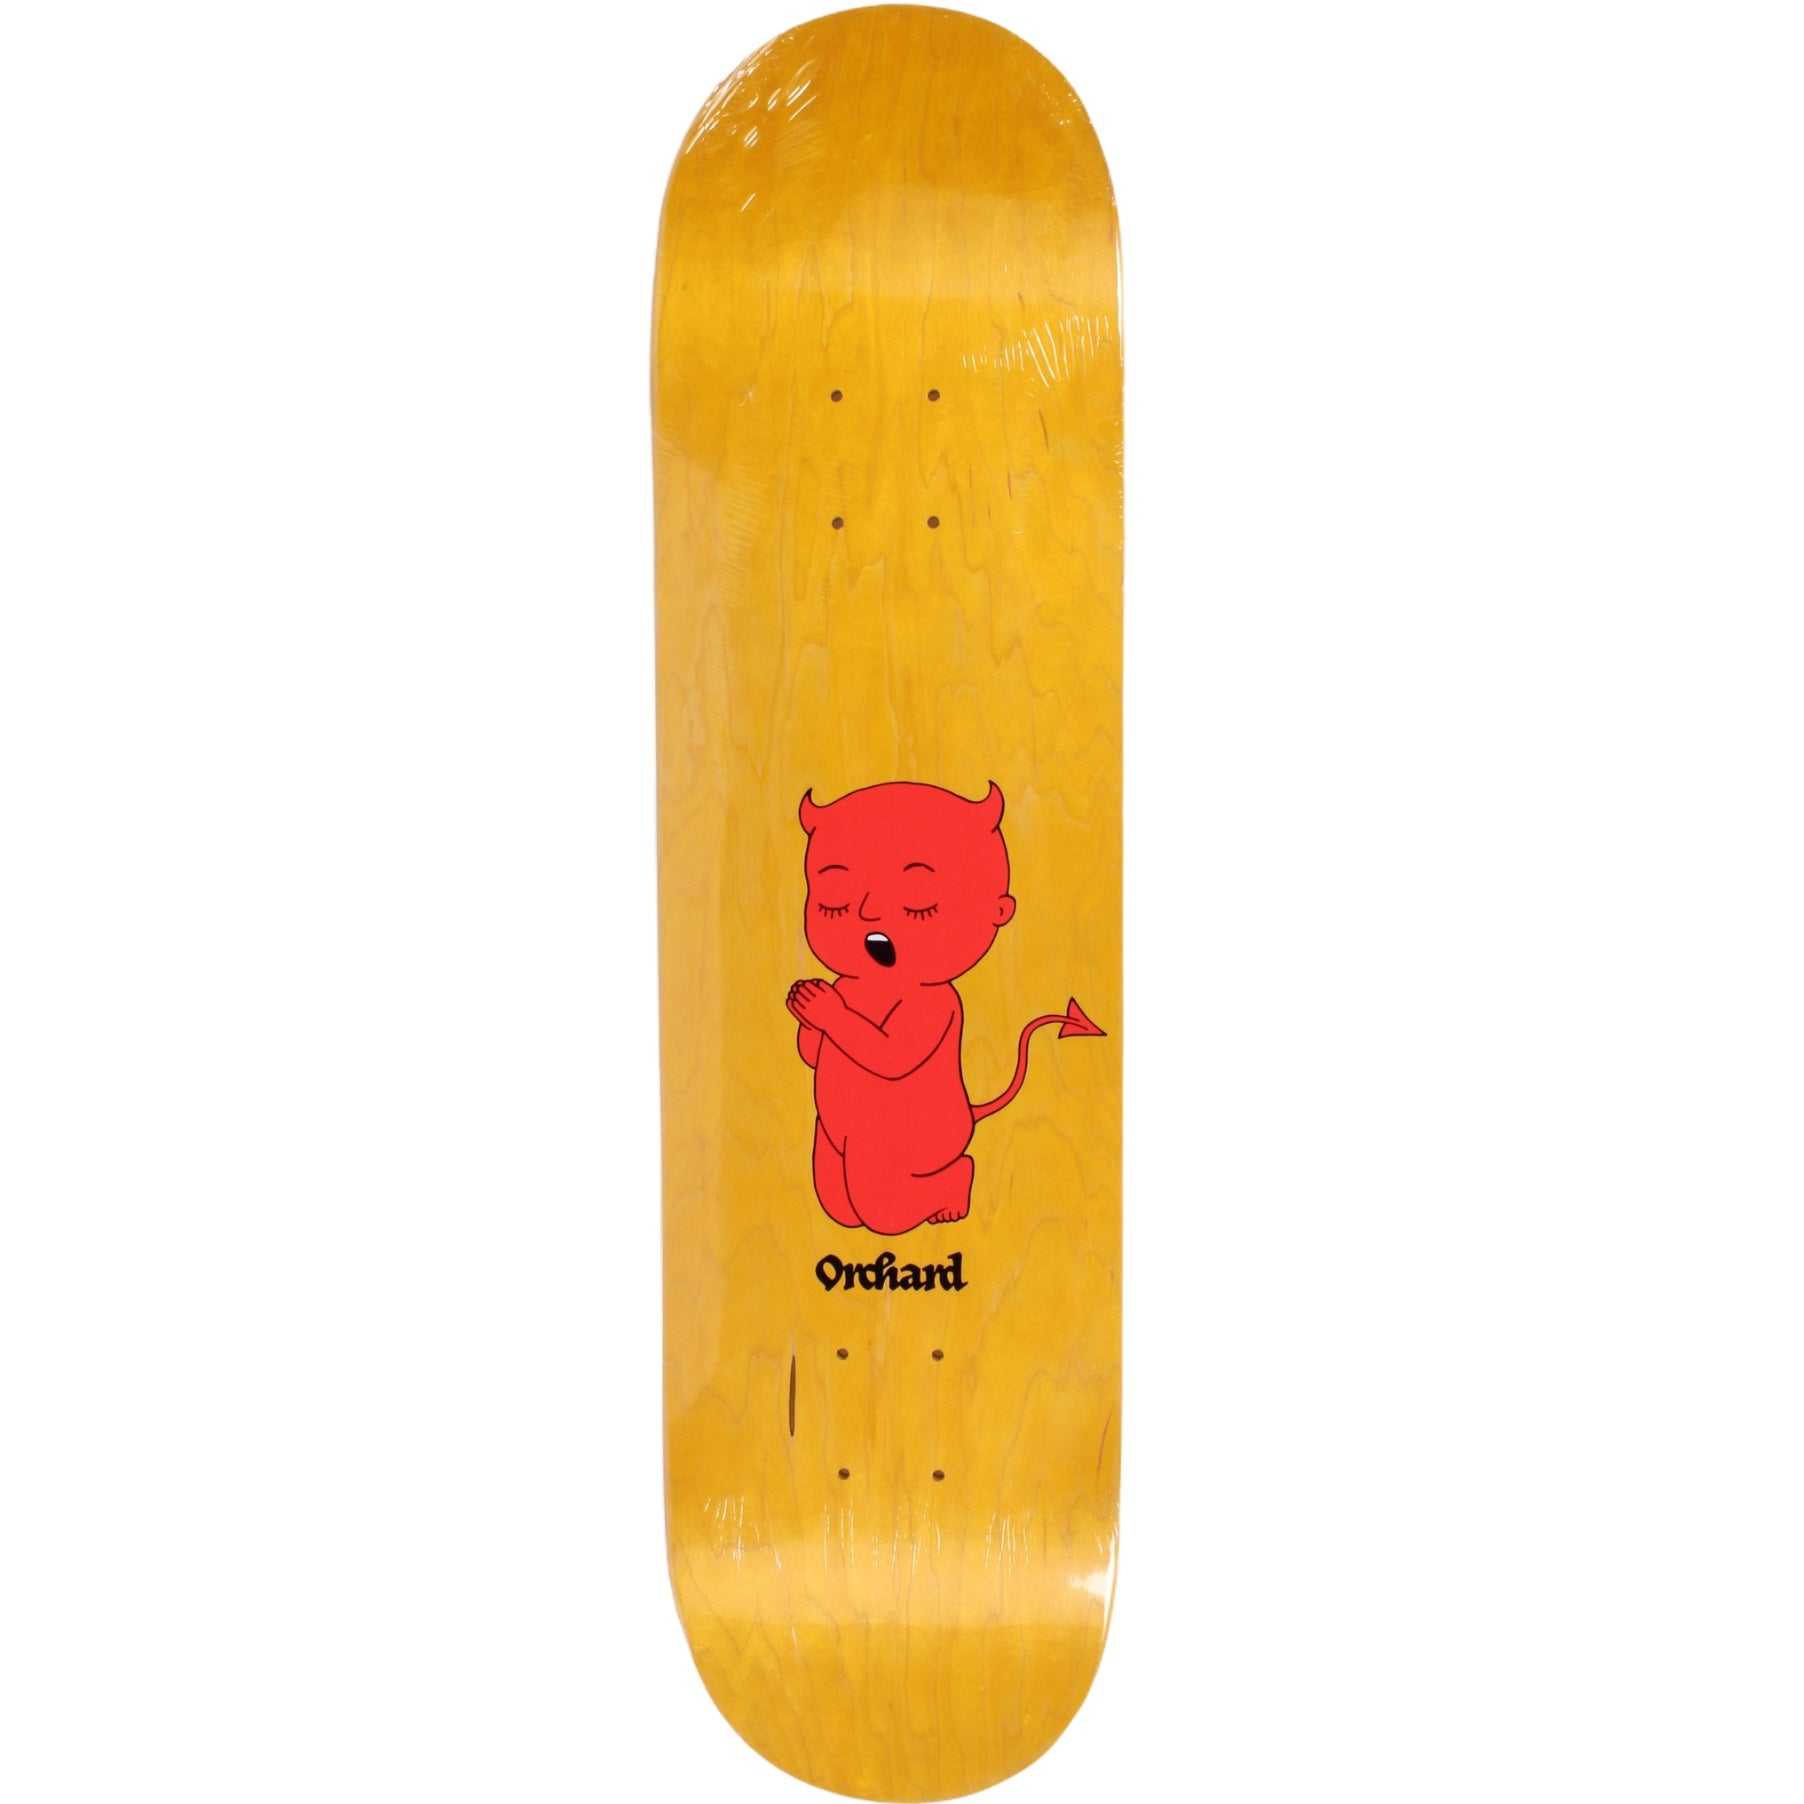 Orchard Thoughts & Prayers Deck 7.6""